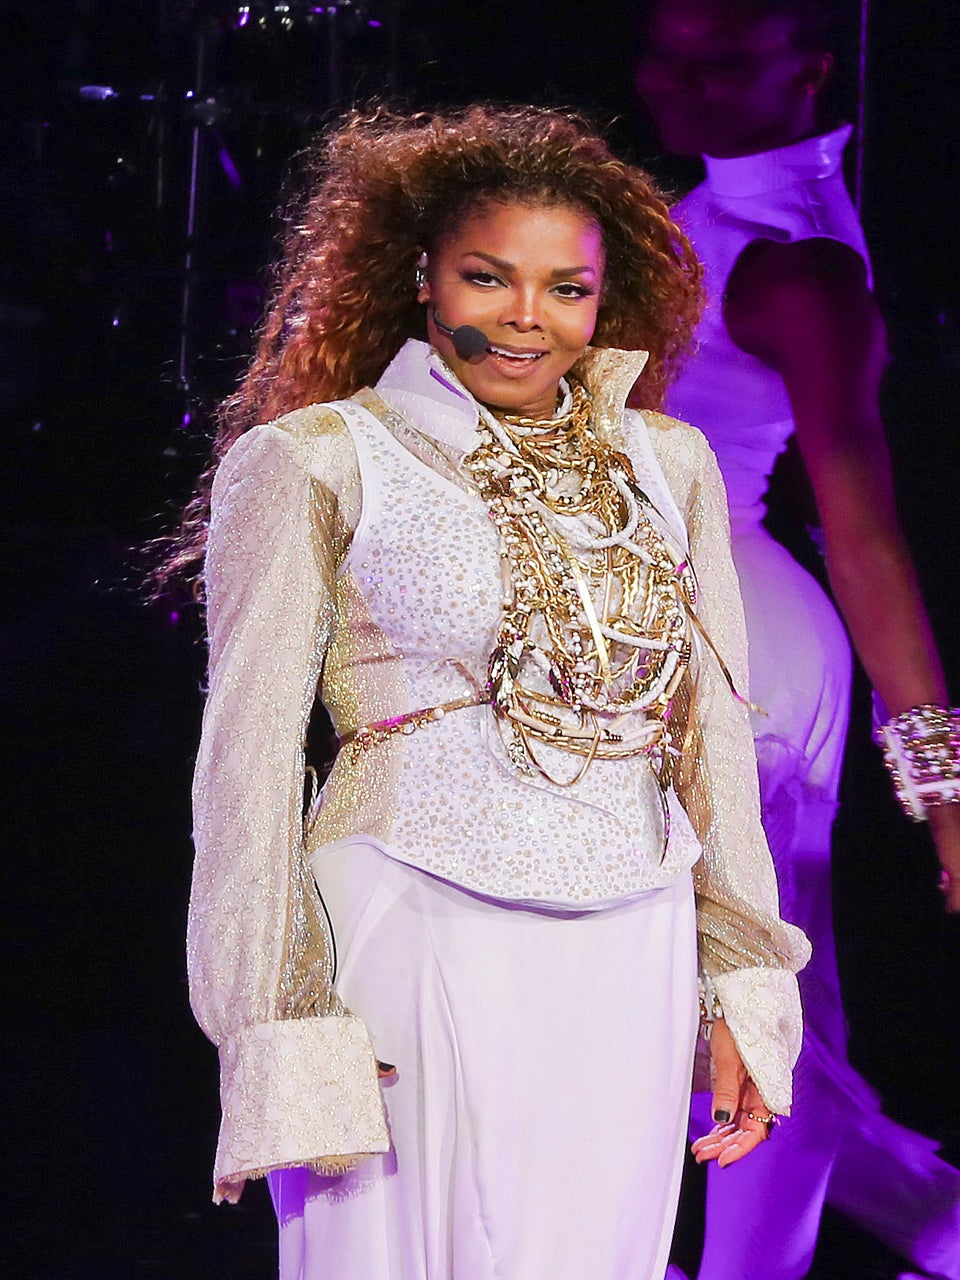 Janet Jackson Confirms Divorce, Announces Special Message To Her Fans